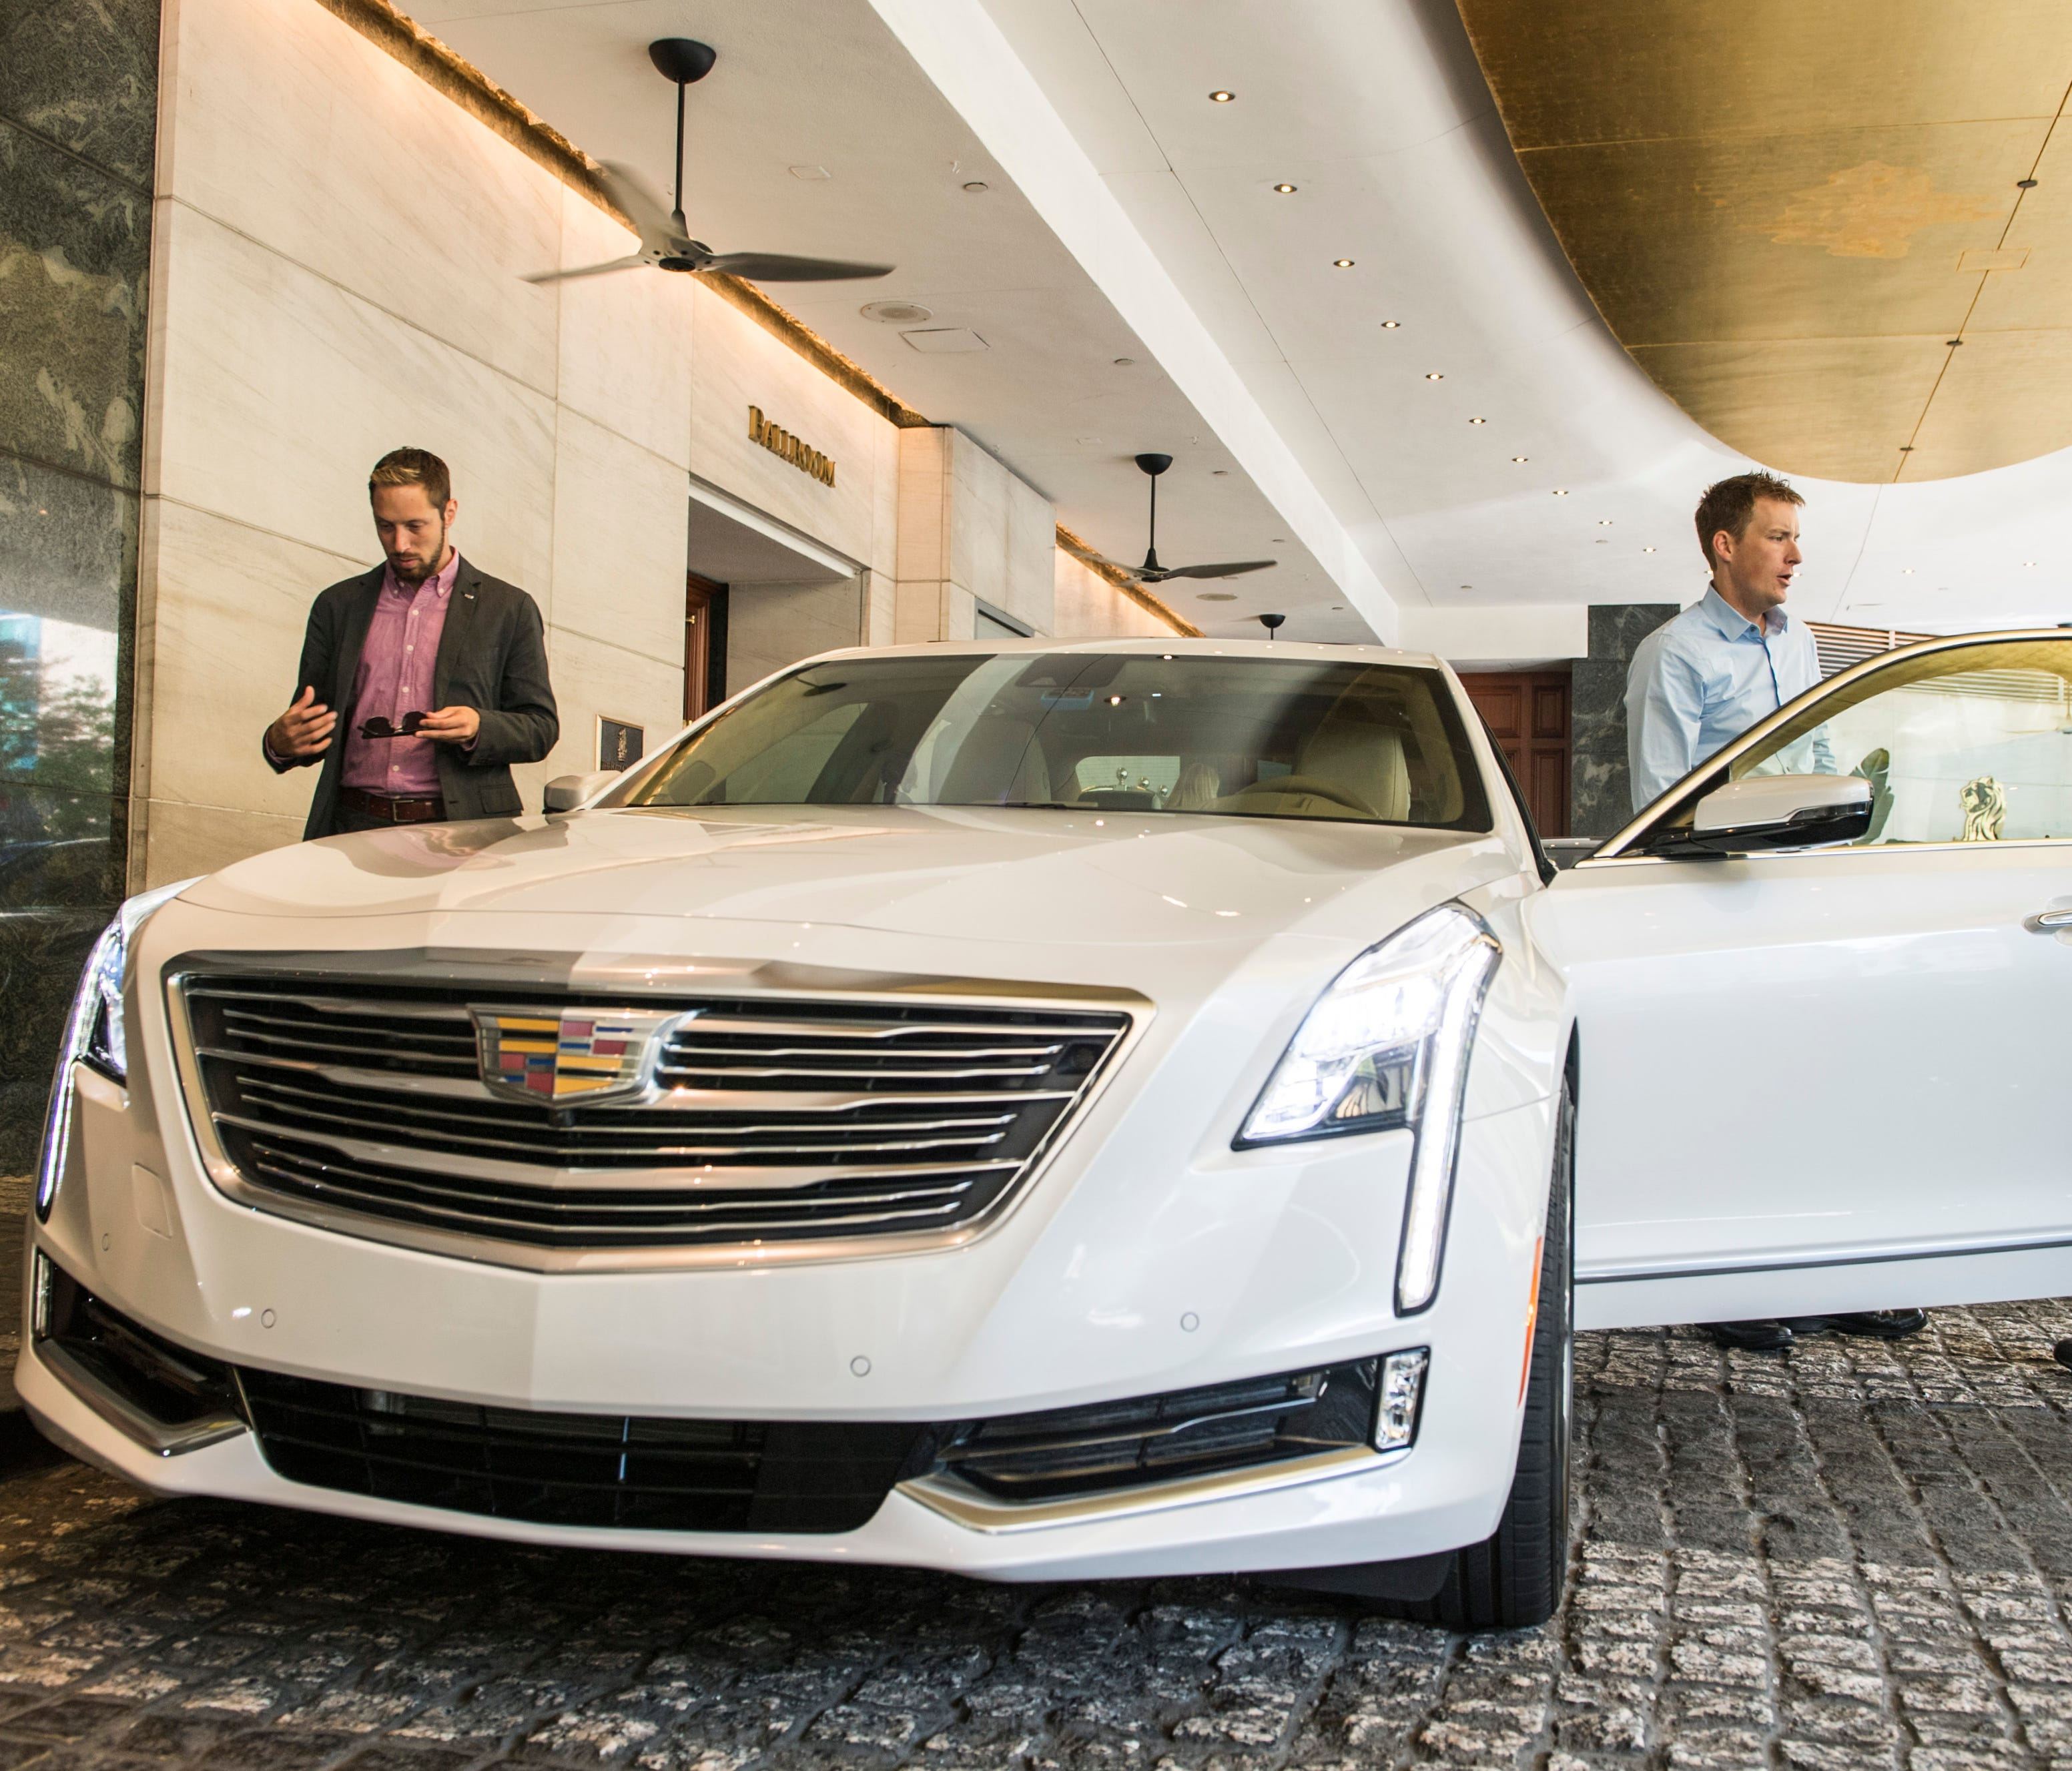 USA TODAY reporter Nathan Bomey test drives a 2018 Cadillac CT6 sedan featuring semi-self-driving vehicle technology, called Super Cruise.